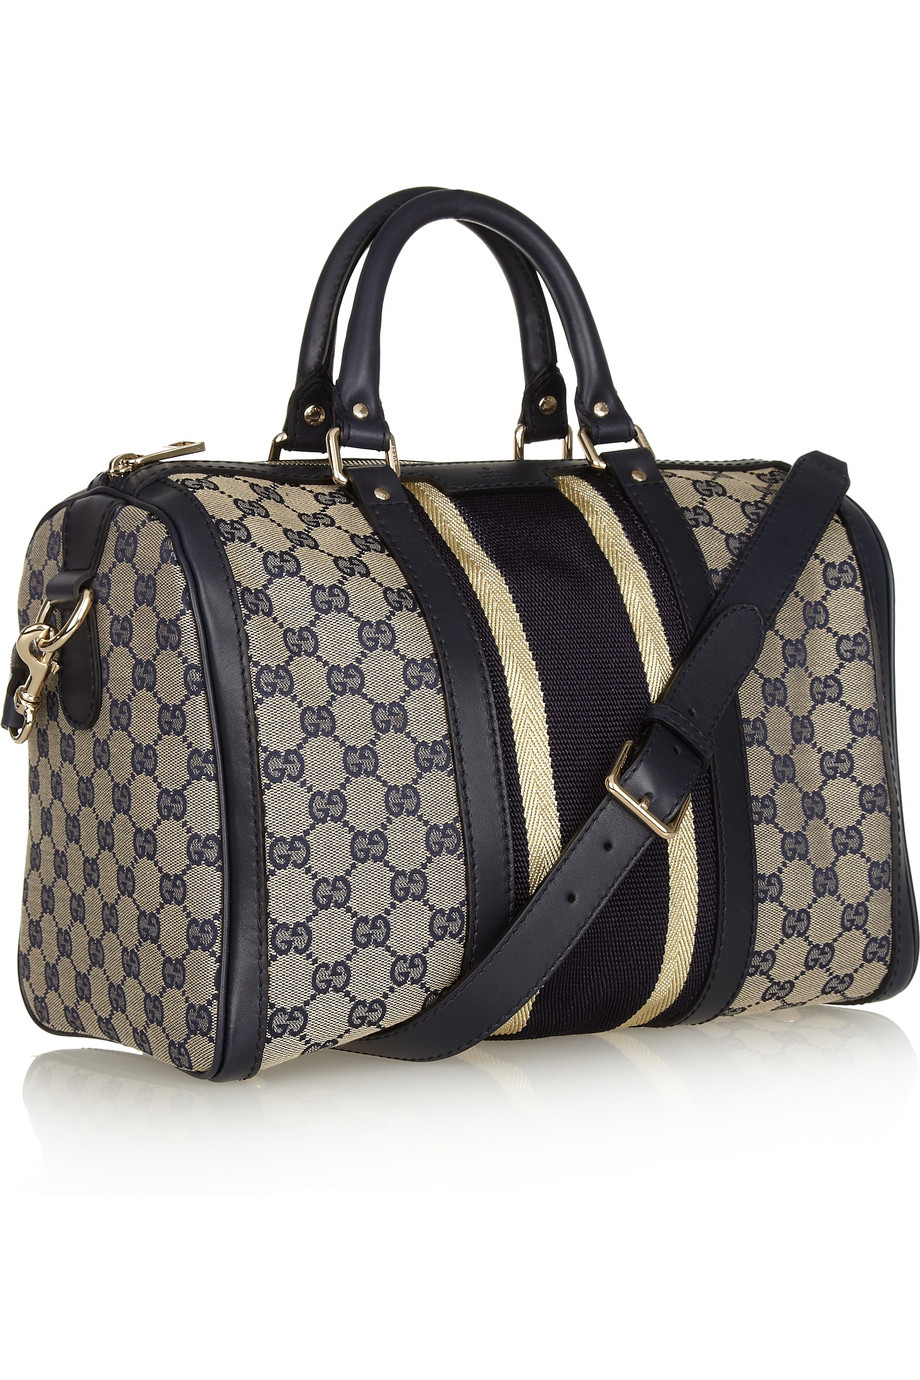 f92ccbfa57e6 Gucci Leather-trimmed Canvas Bowling Bag in Natural - Lyst